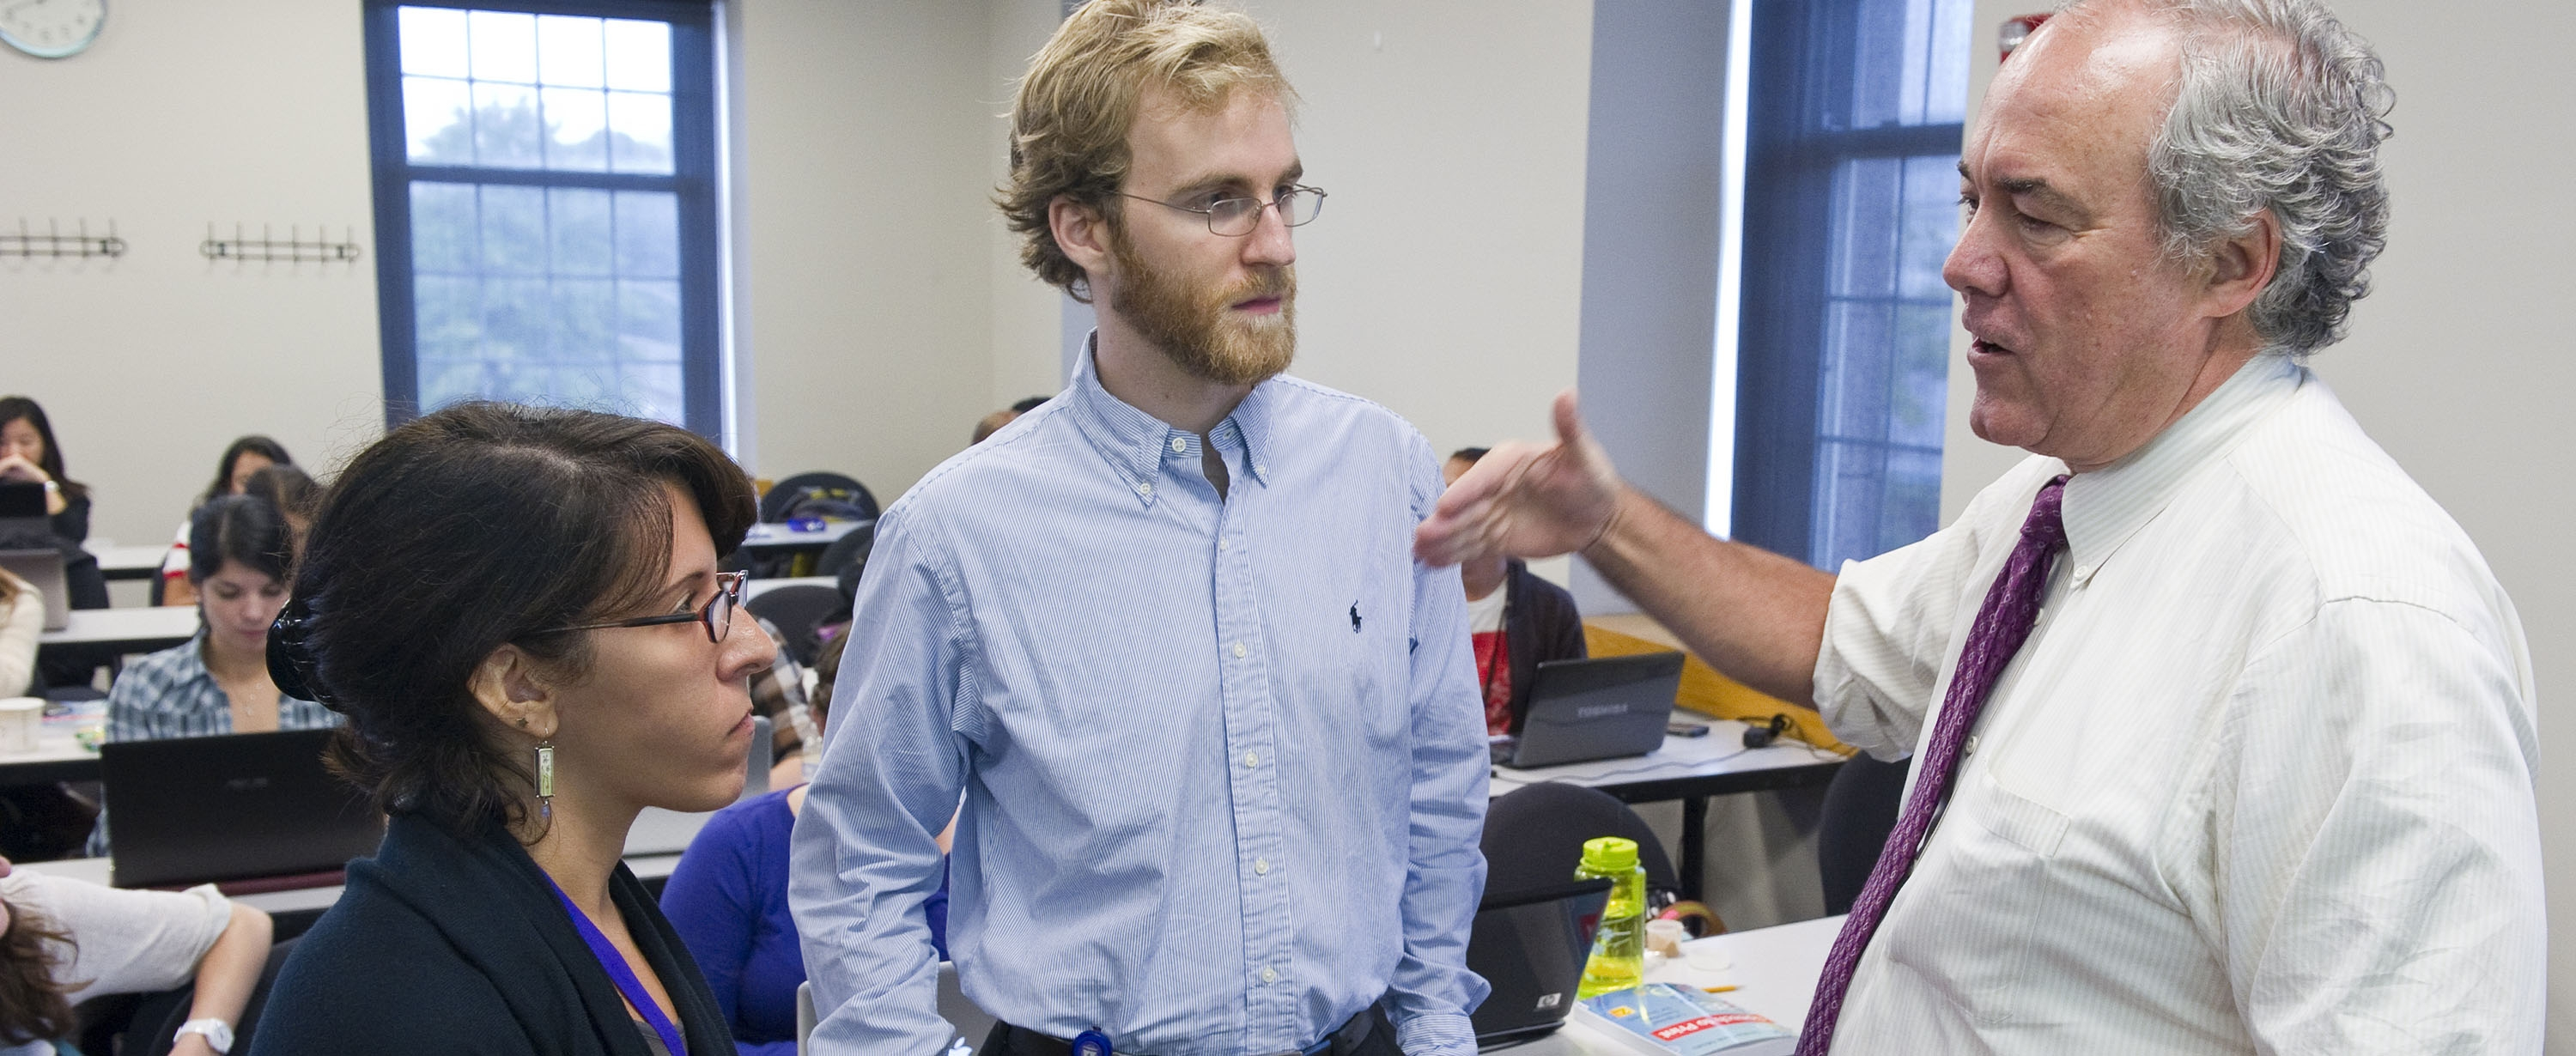 Dr. Charles Haynes Talking With Students. Our Faculty: Active Clinicians,  Leading Researchers